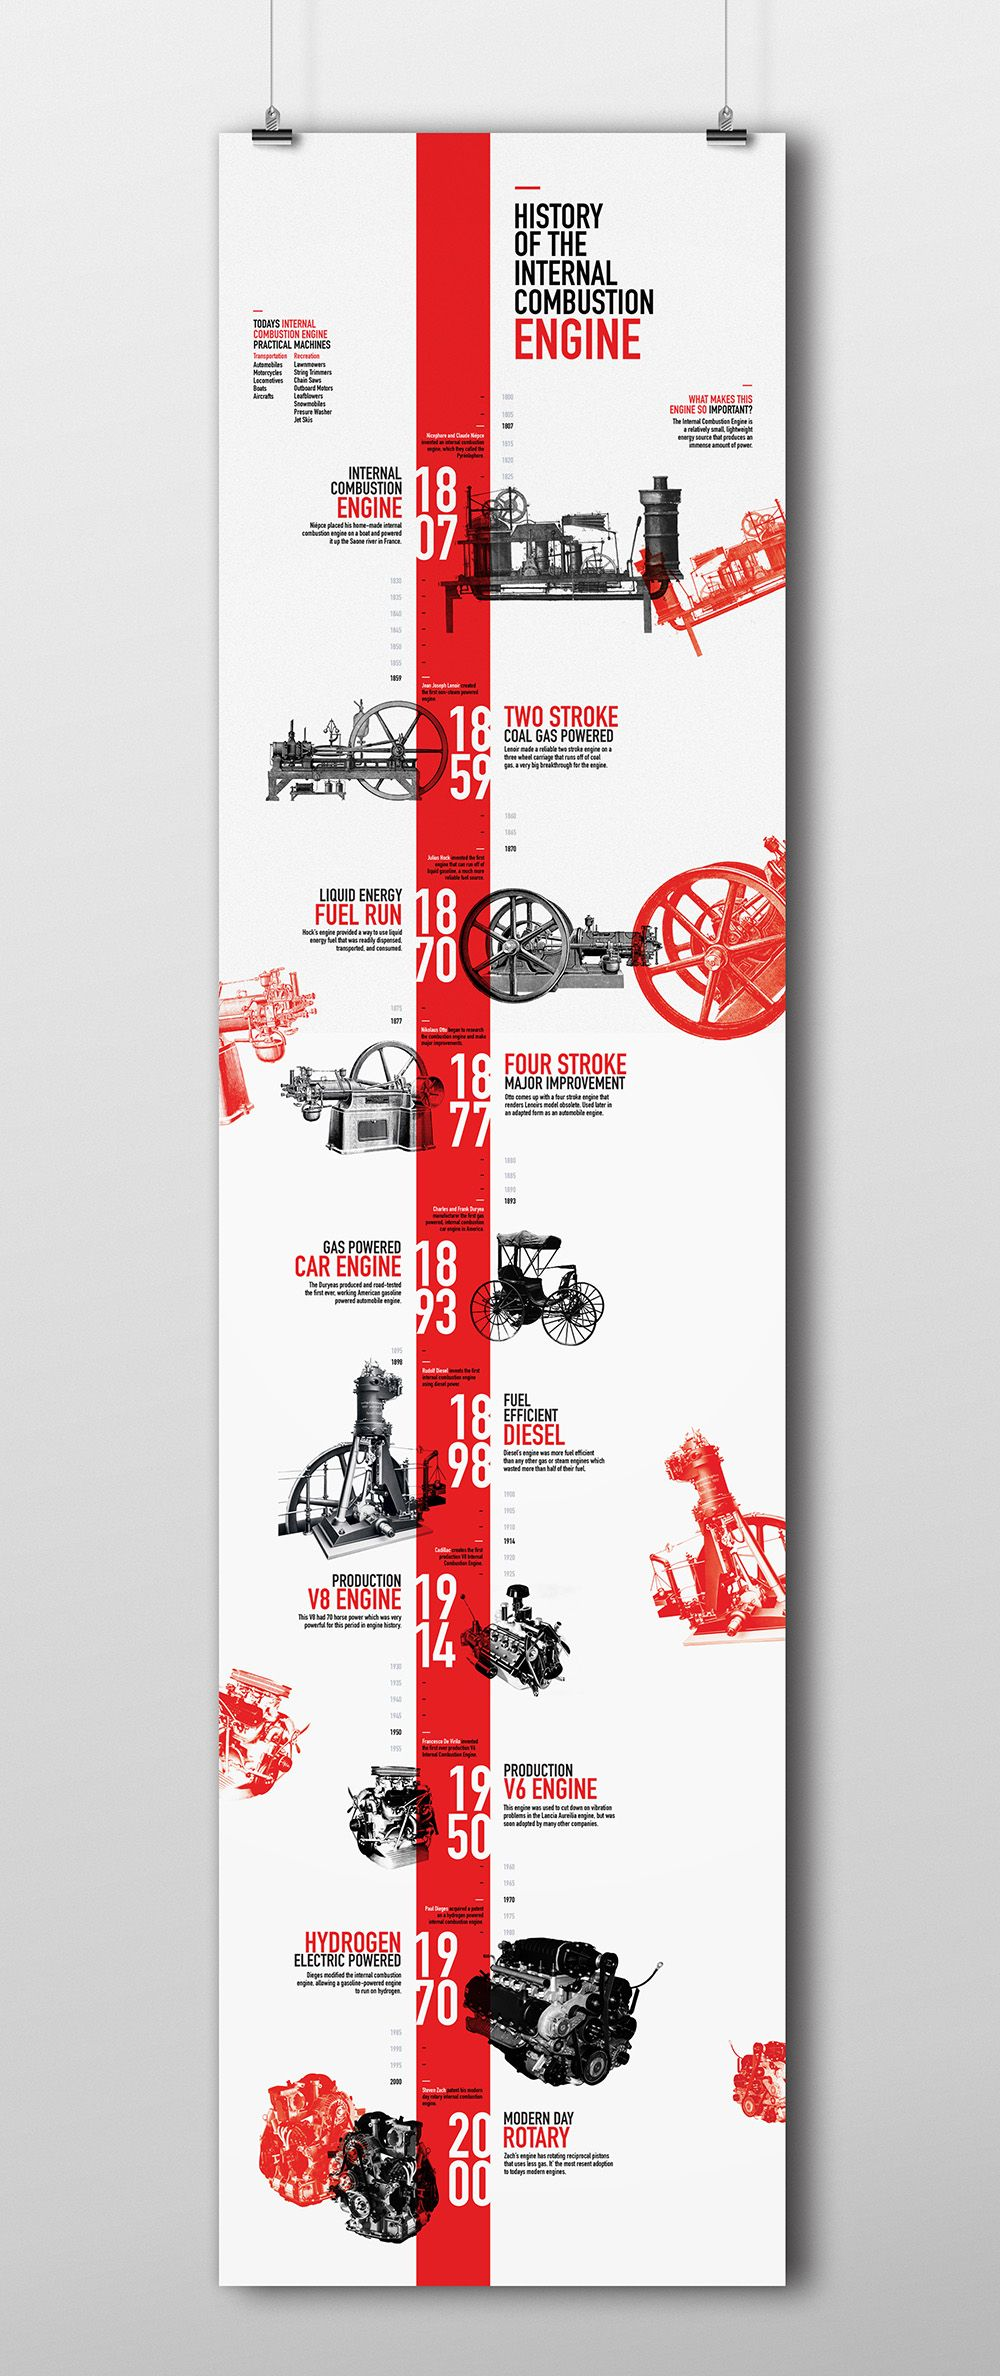 Pin on Timeline Infographic Design Ideas & Templates